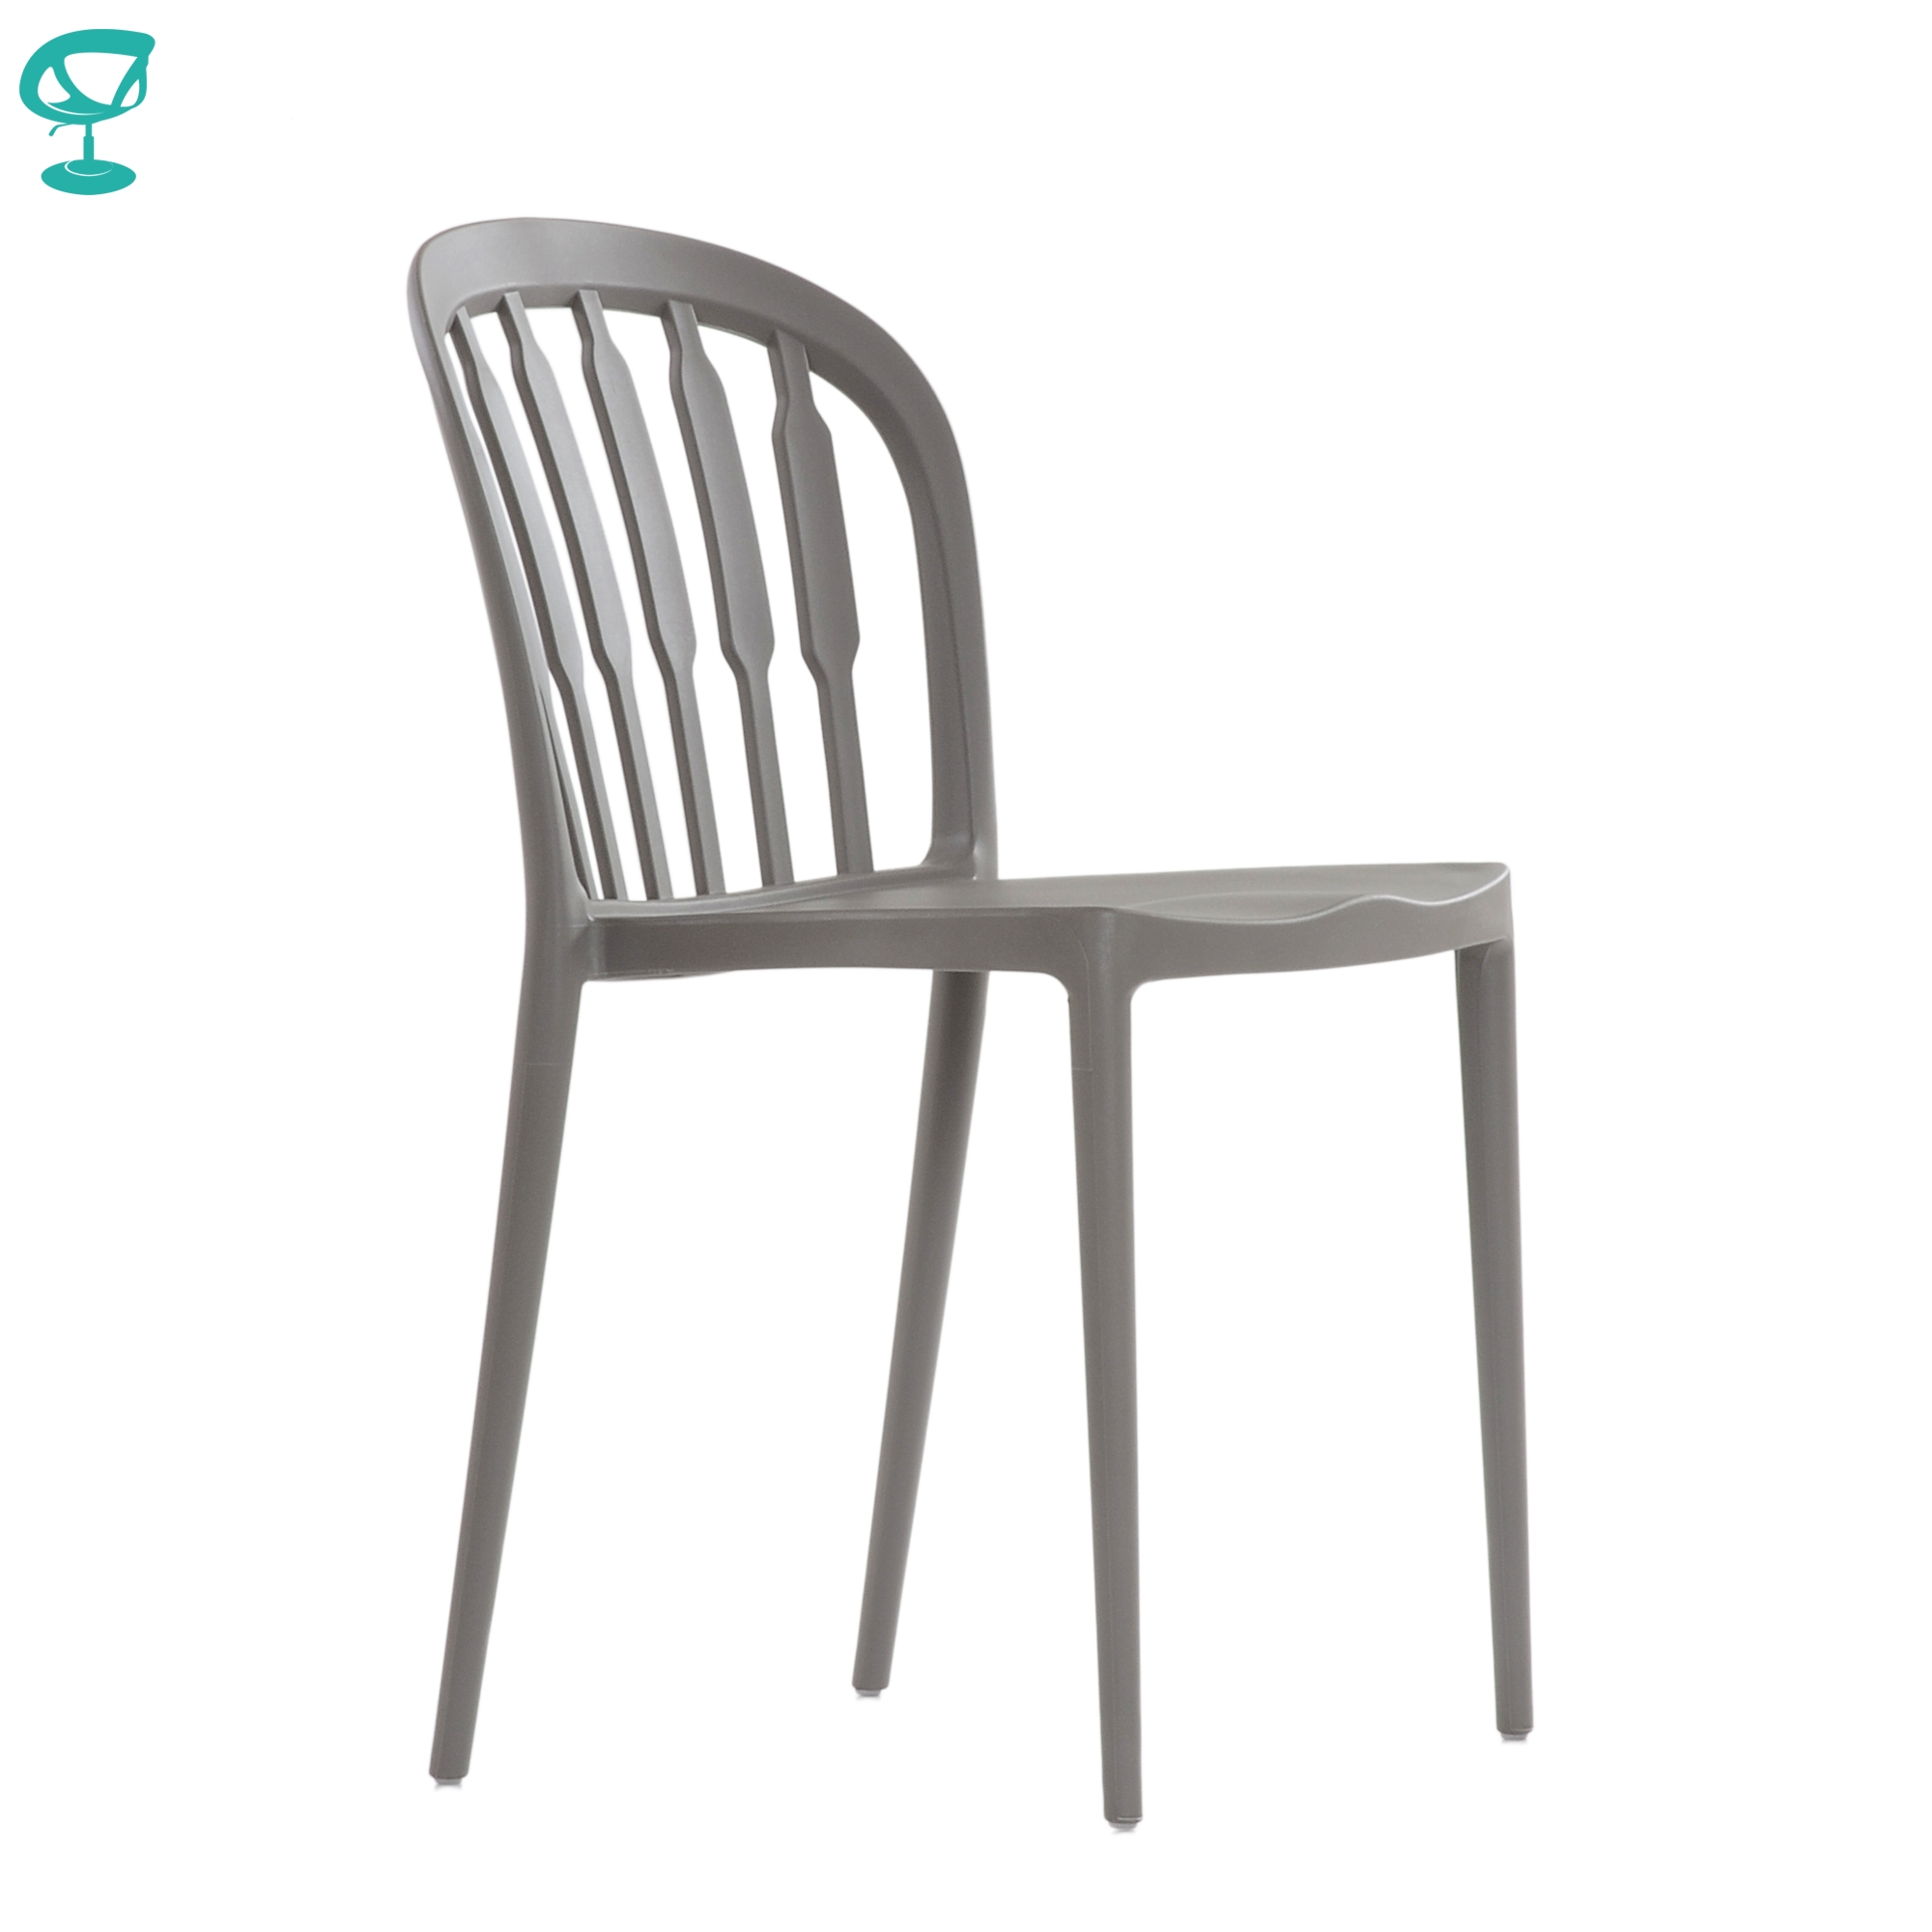 95720 Barneo N-216 Plastic Kitchen Interior Stool Chair For A Street Cafe Chair Kitchen Furniture White Free Shipping In Russia